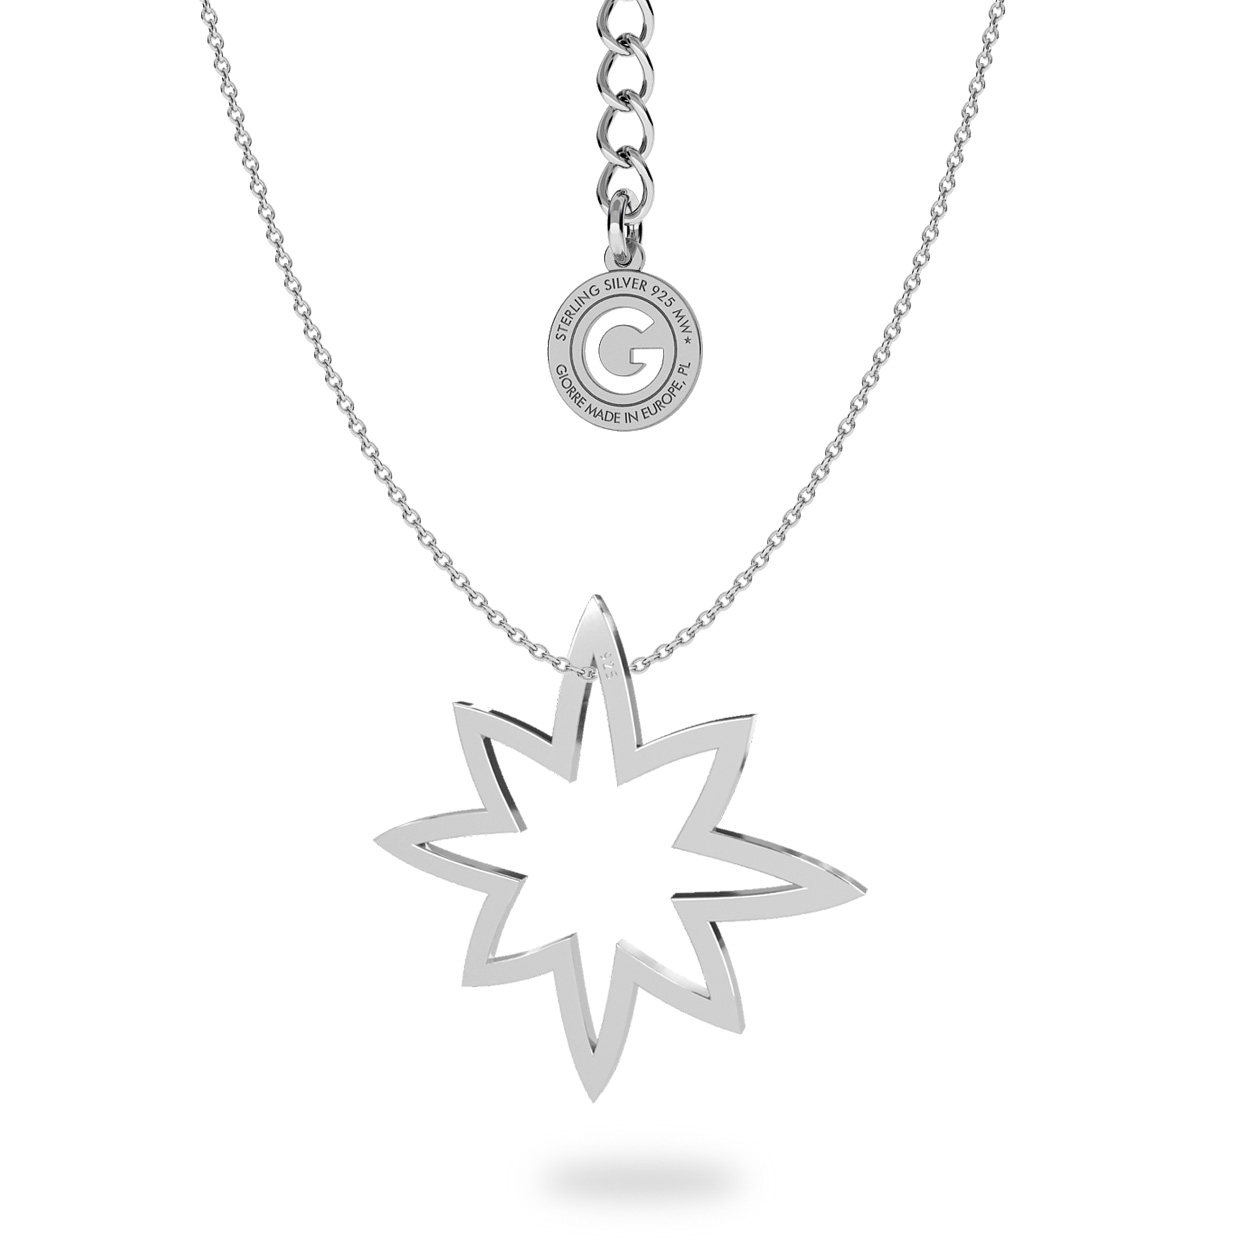 Star necklace sterling silver 925